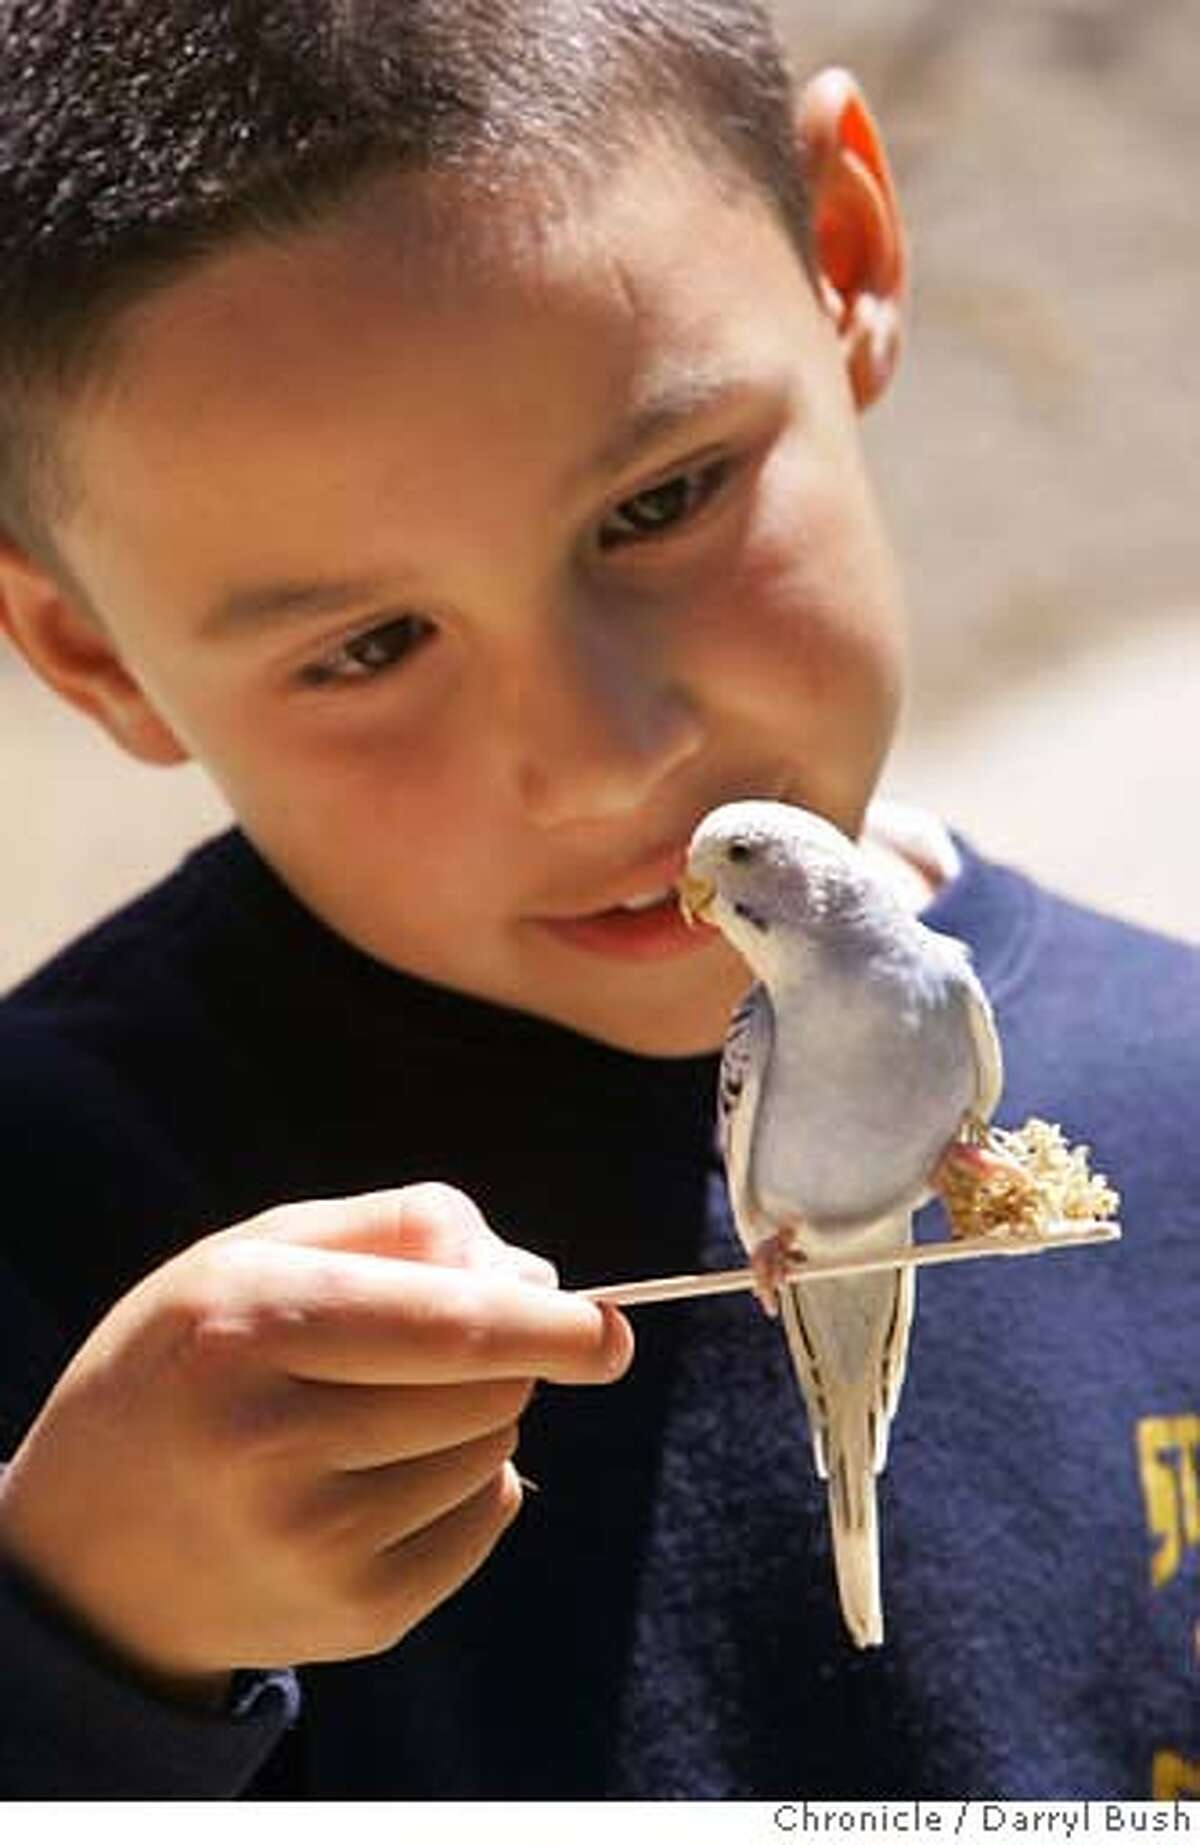 """binnowee_032_db.JPG Zoo visitor, Vincent Lopez, 9, of San Francisco feeds an Australian bird called a """"Budgie,"""" otherwise known as a grass parakeet, with a stick holding millet at the end, at Binnowee Landing, a walk-in aviary at San Francisco Zoo in San Francisco, CA on Thursday, June 15, 2006. shot: 6/15/06 Darryl Bush / The Chronicle **Vincent Lopez (cq)"""